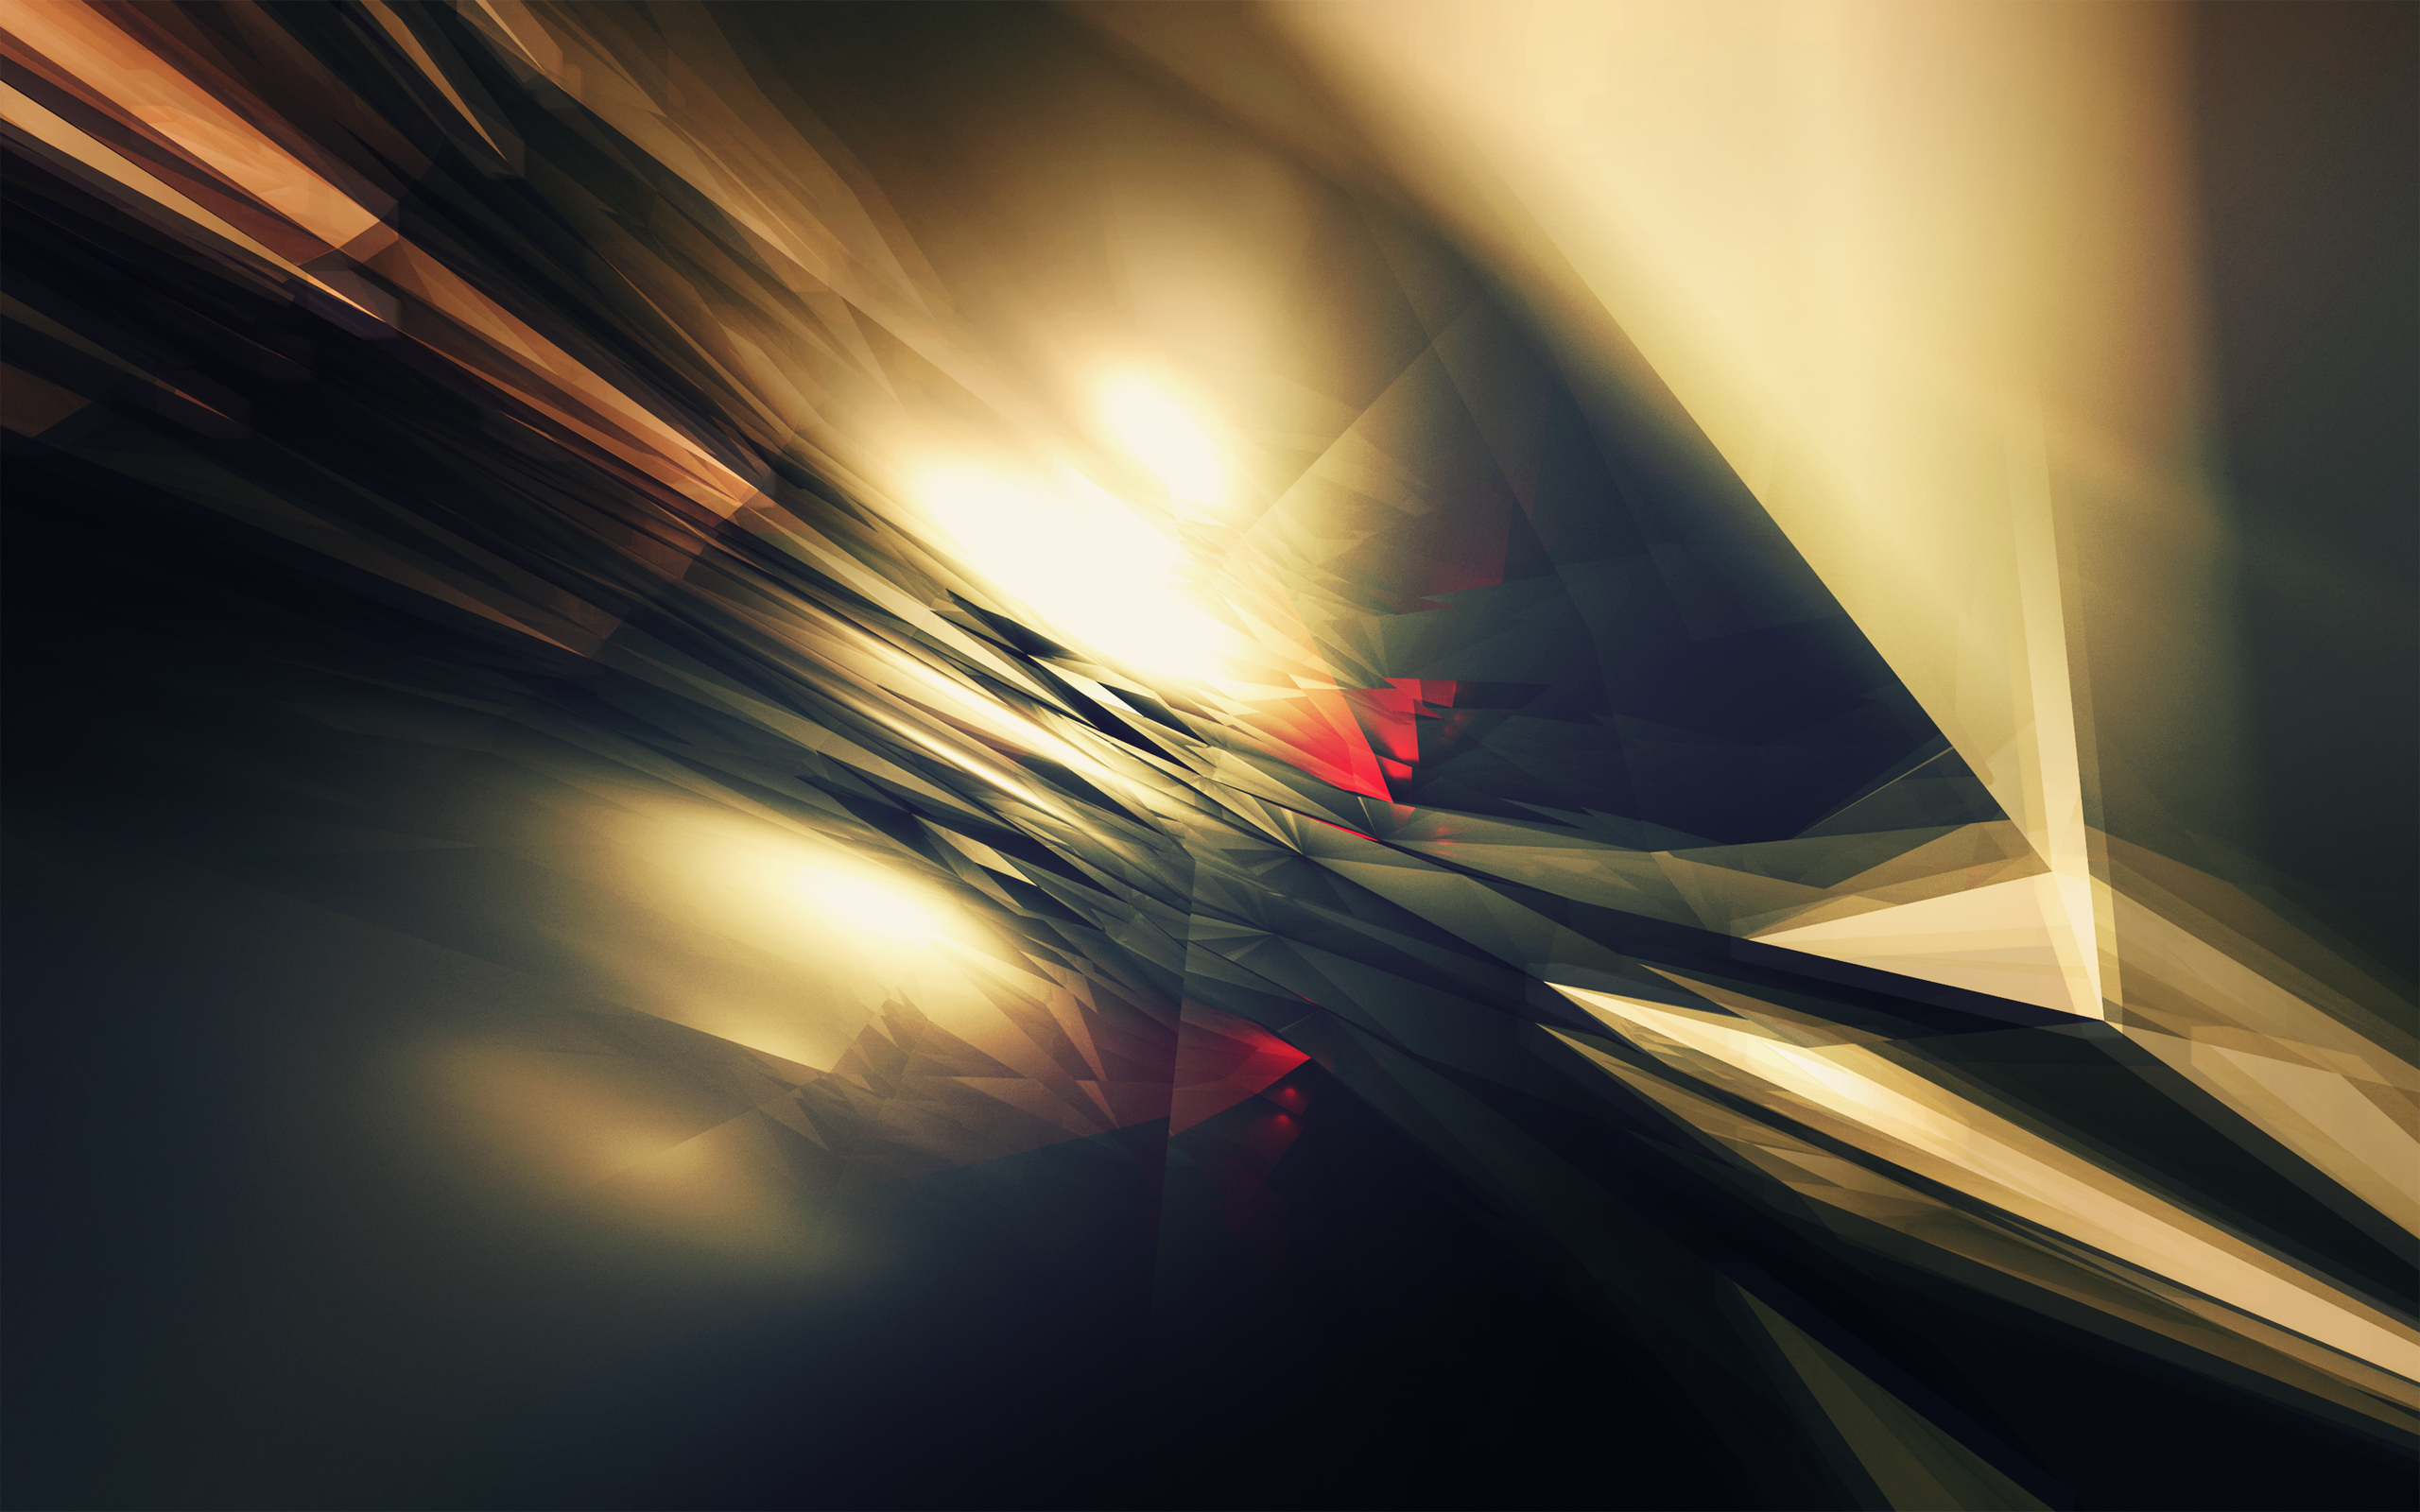 Abstract lights photo